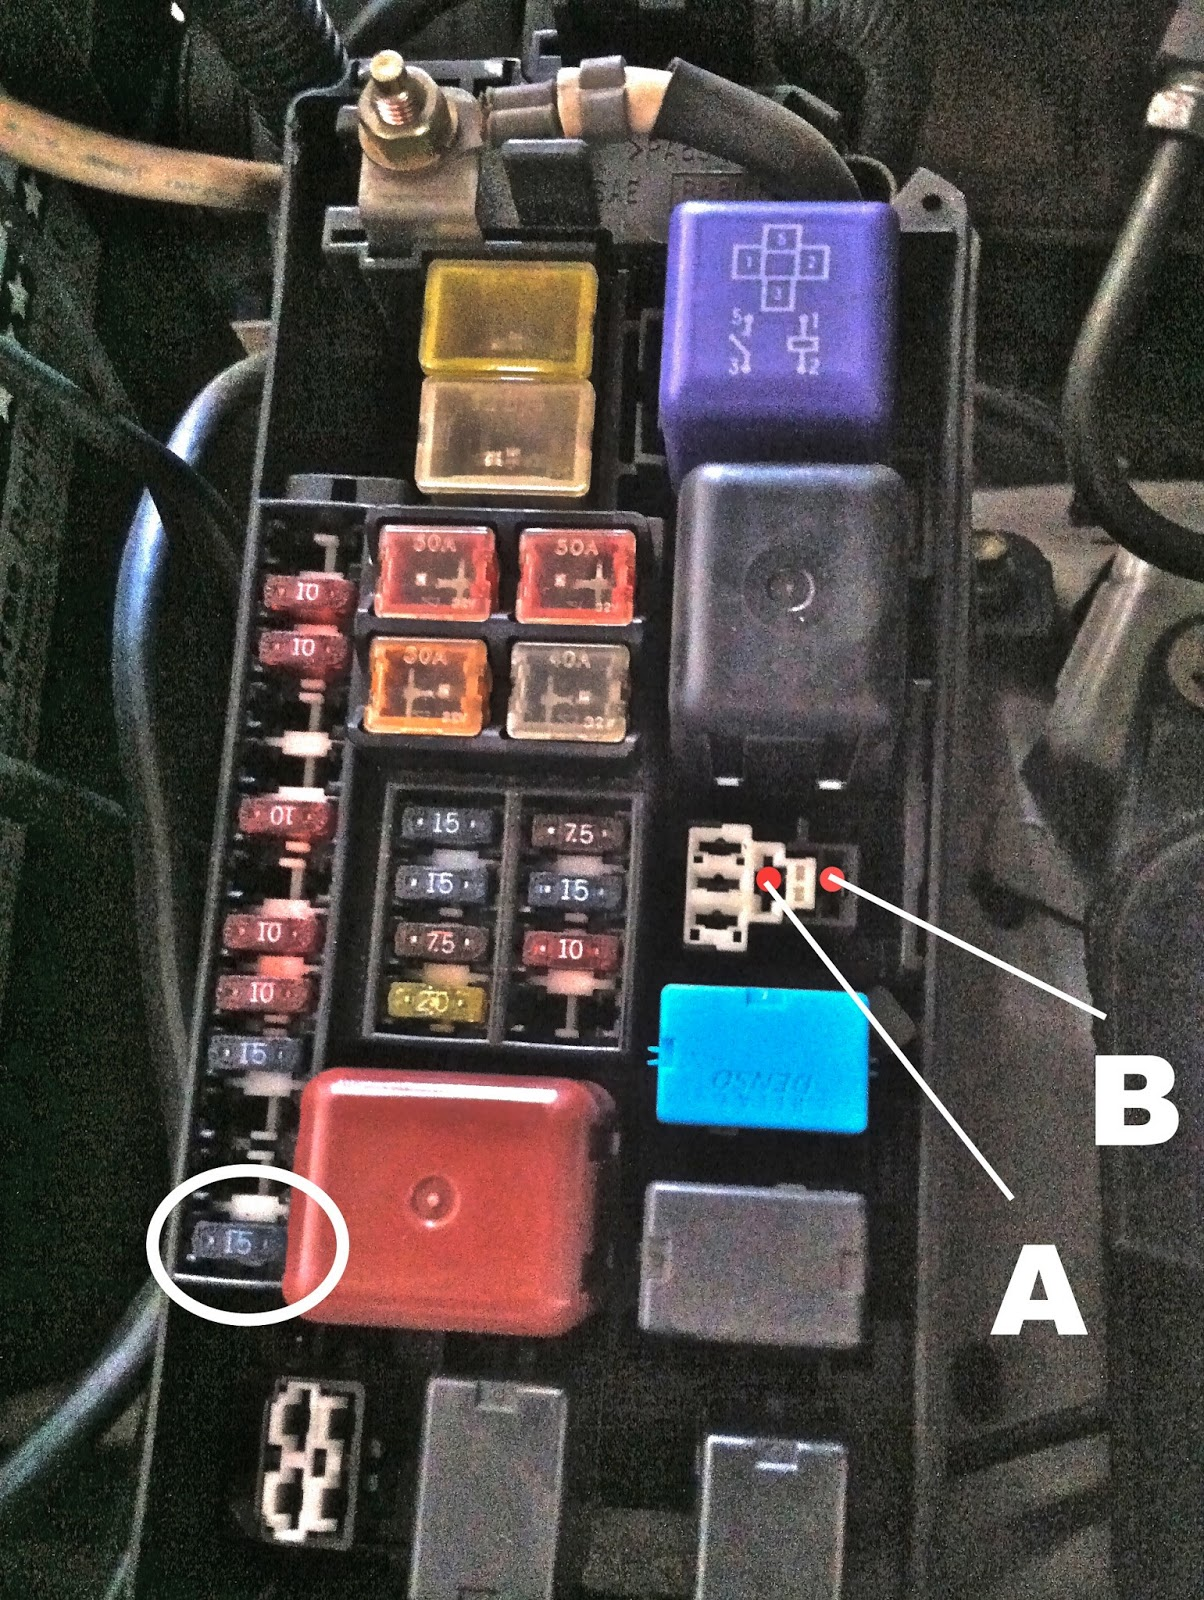 79683 Switched Backup Camera Mod 4 additionally 1996 Toyota Tercel Wiring Diagram And Electrical System Troubleshooting also 49655 Please Help Stereo Wiring Colours 1992 Lucida also FUJITSU TEN Car Radio Wiring Connector moreover 2007 Up Toyota Tundra Doublecab. on 2003 toyota tundra audio wiring